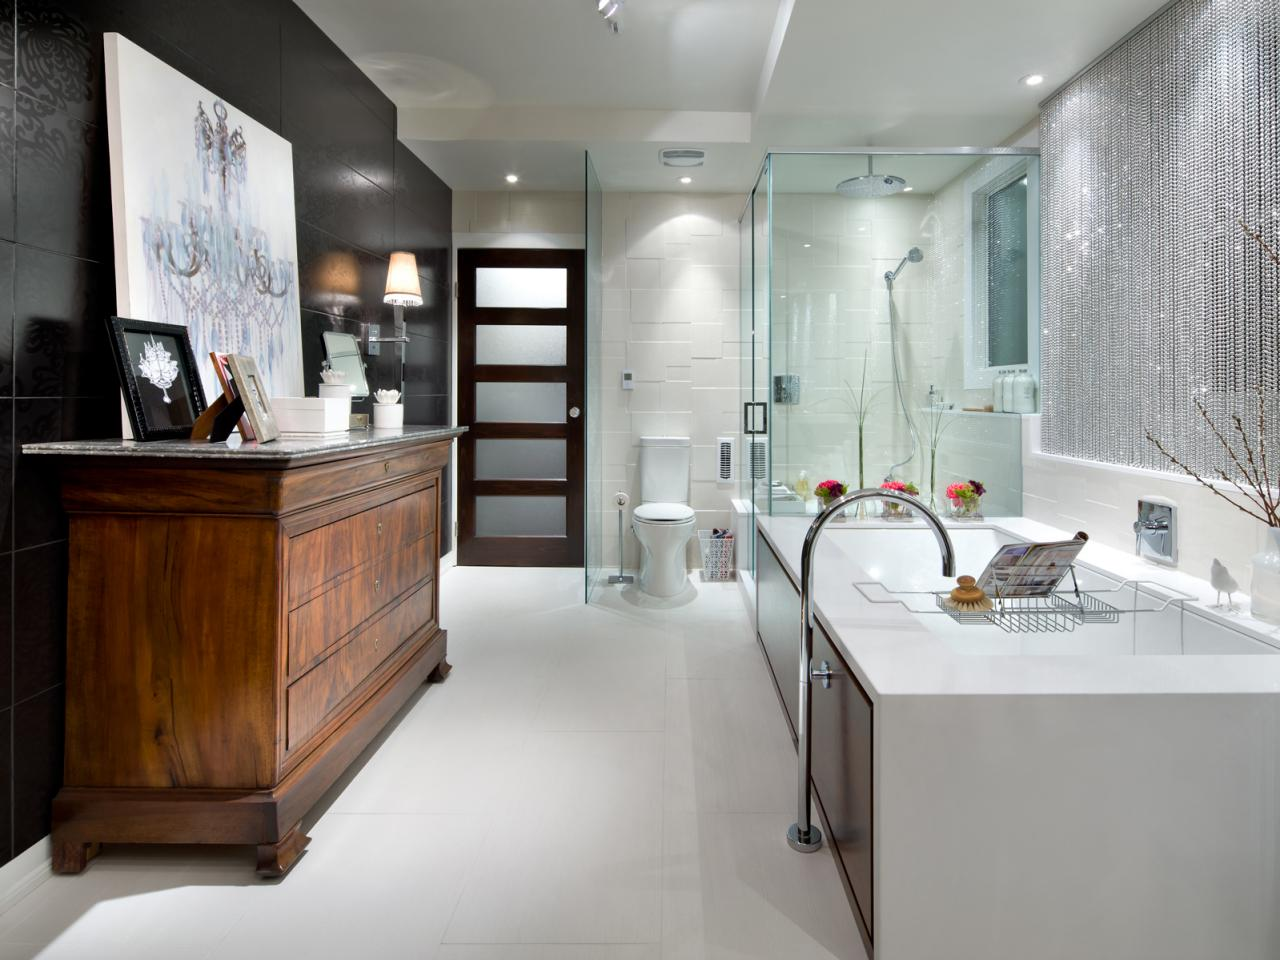 Candice Olson Electric Luxury Bathroom (View 3 of 10)